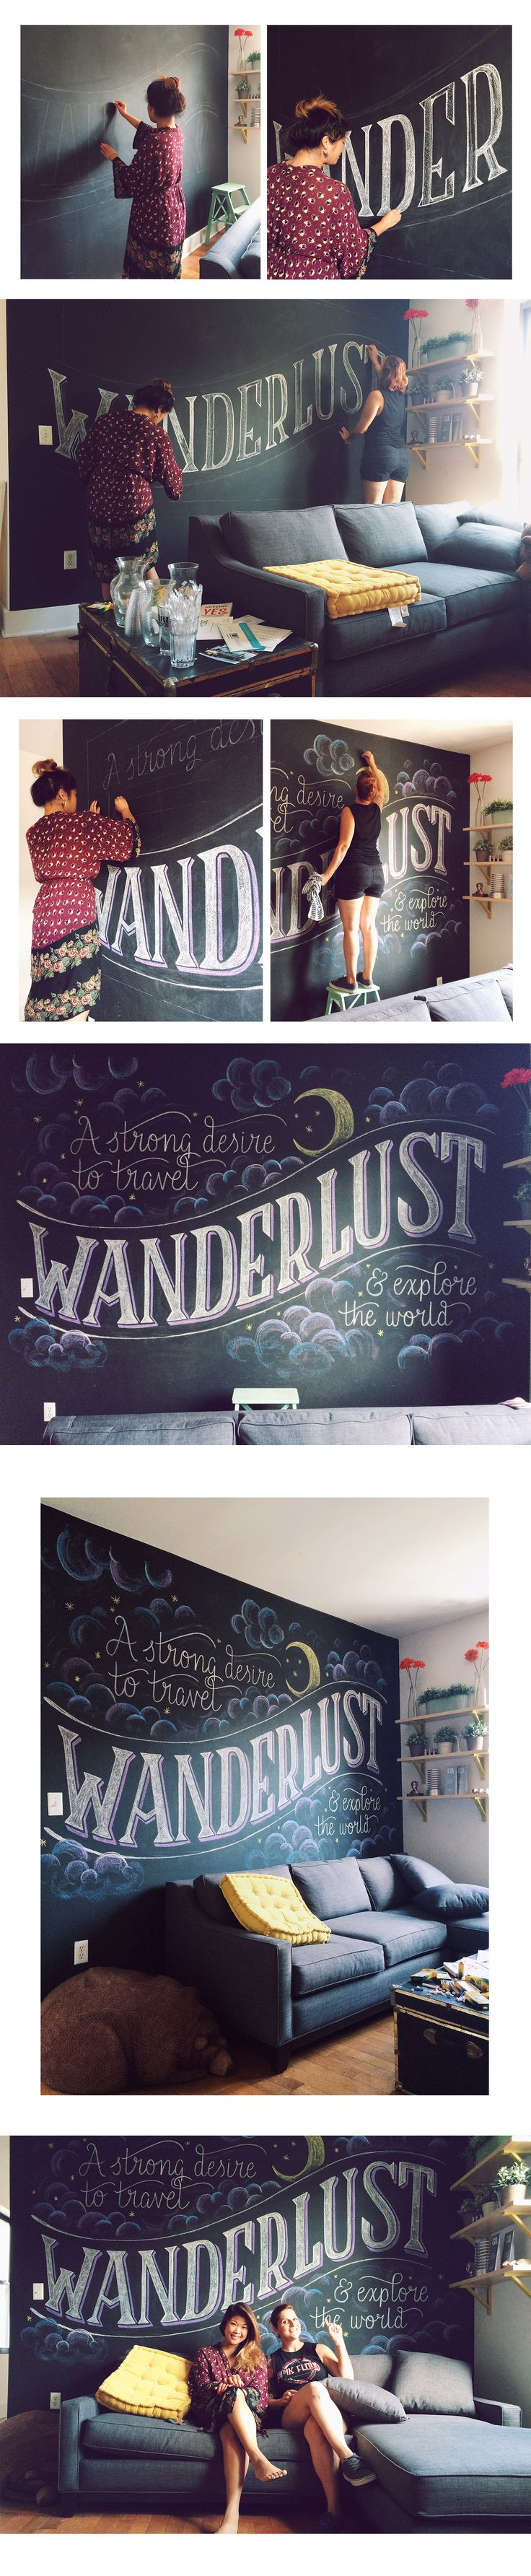 Wanderlust on Behance by Cristina Pagnoncelli